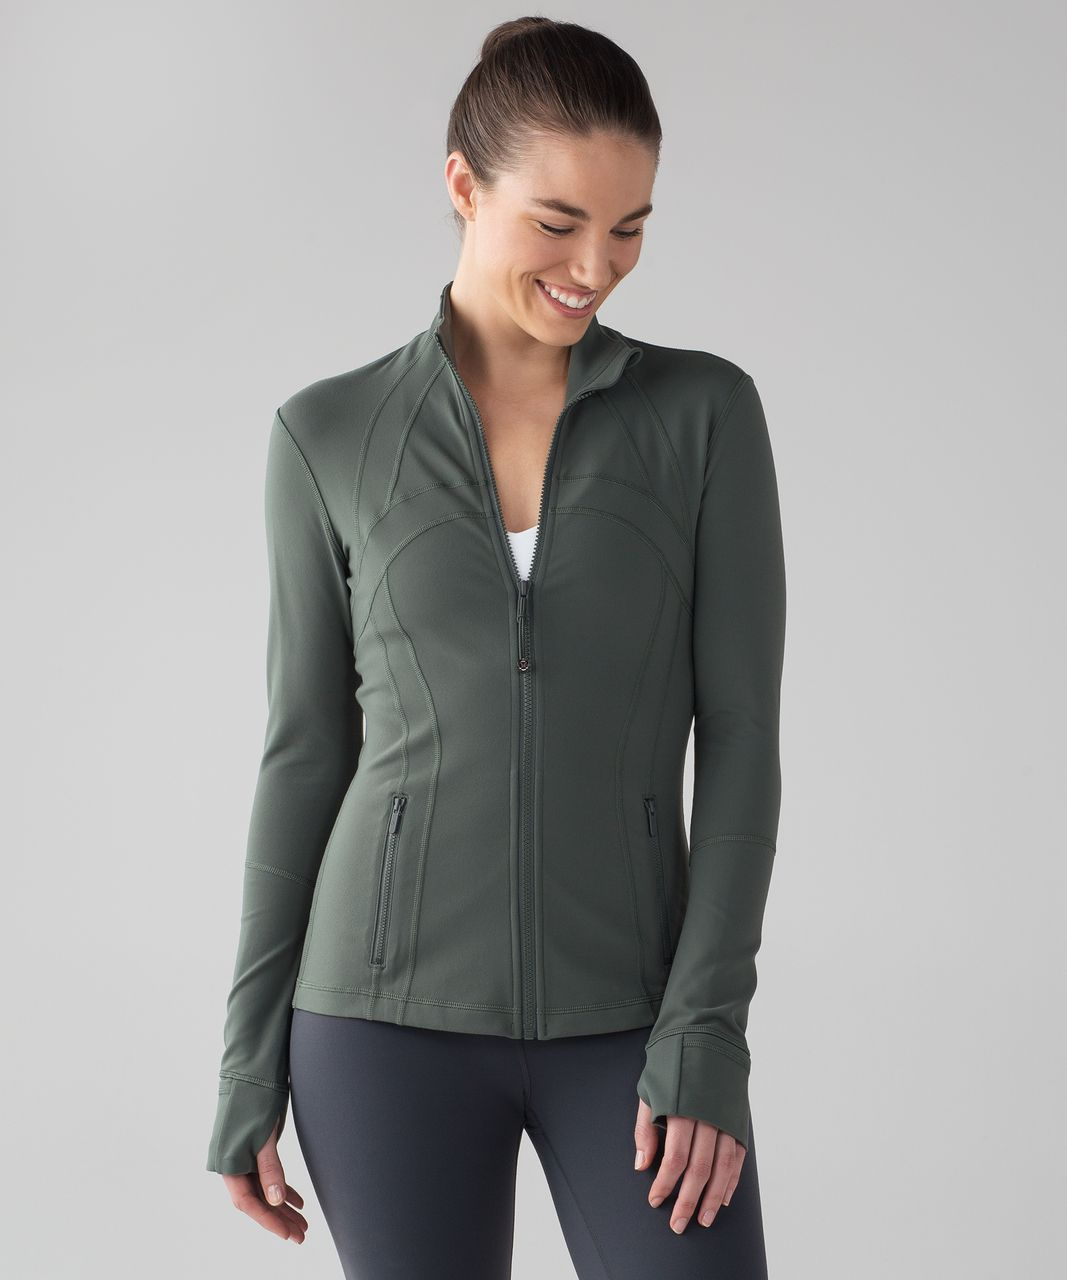 Lululemon Define Jacket - Dark Forest